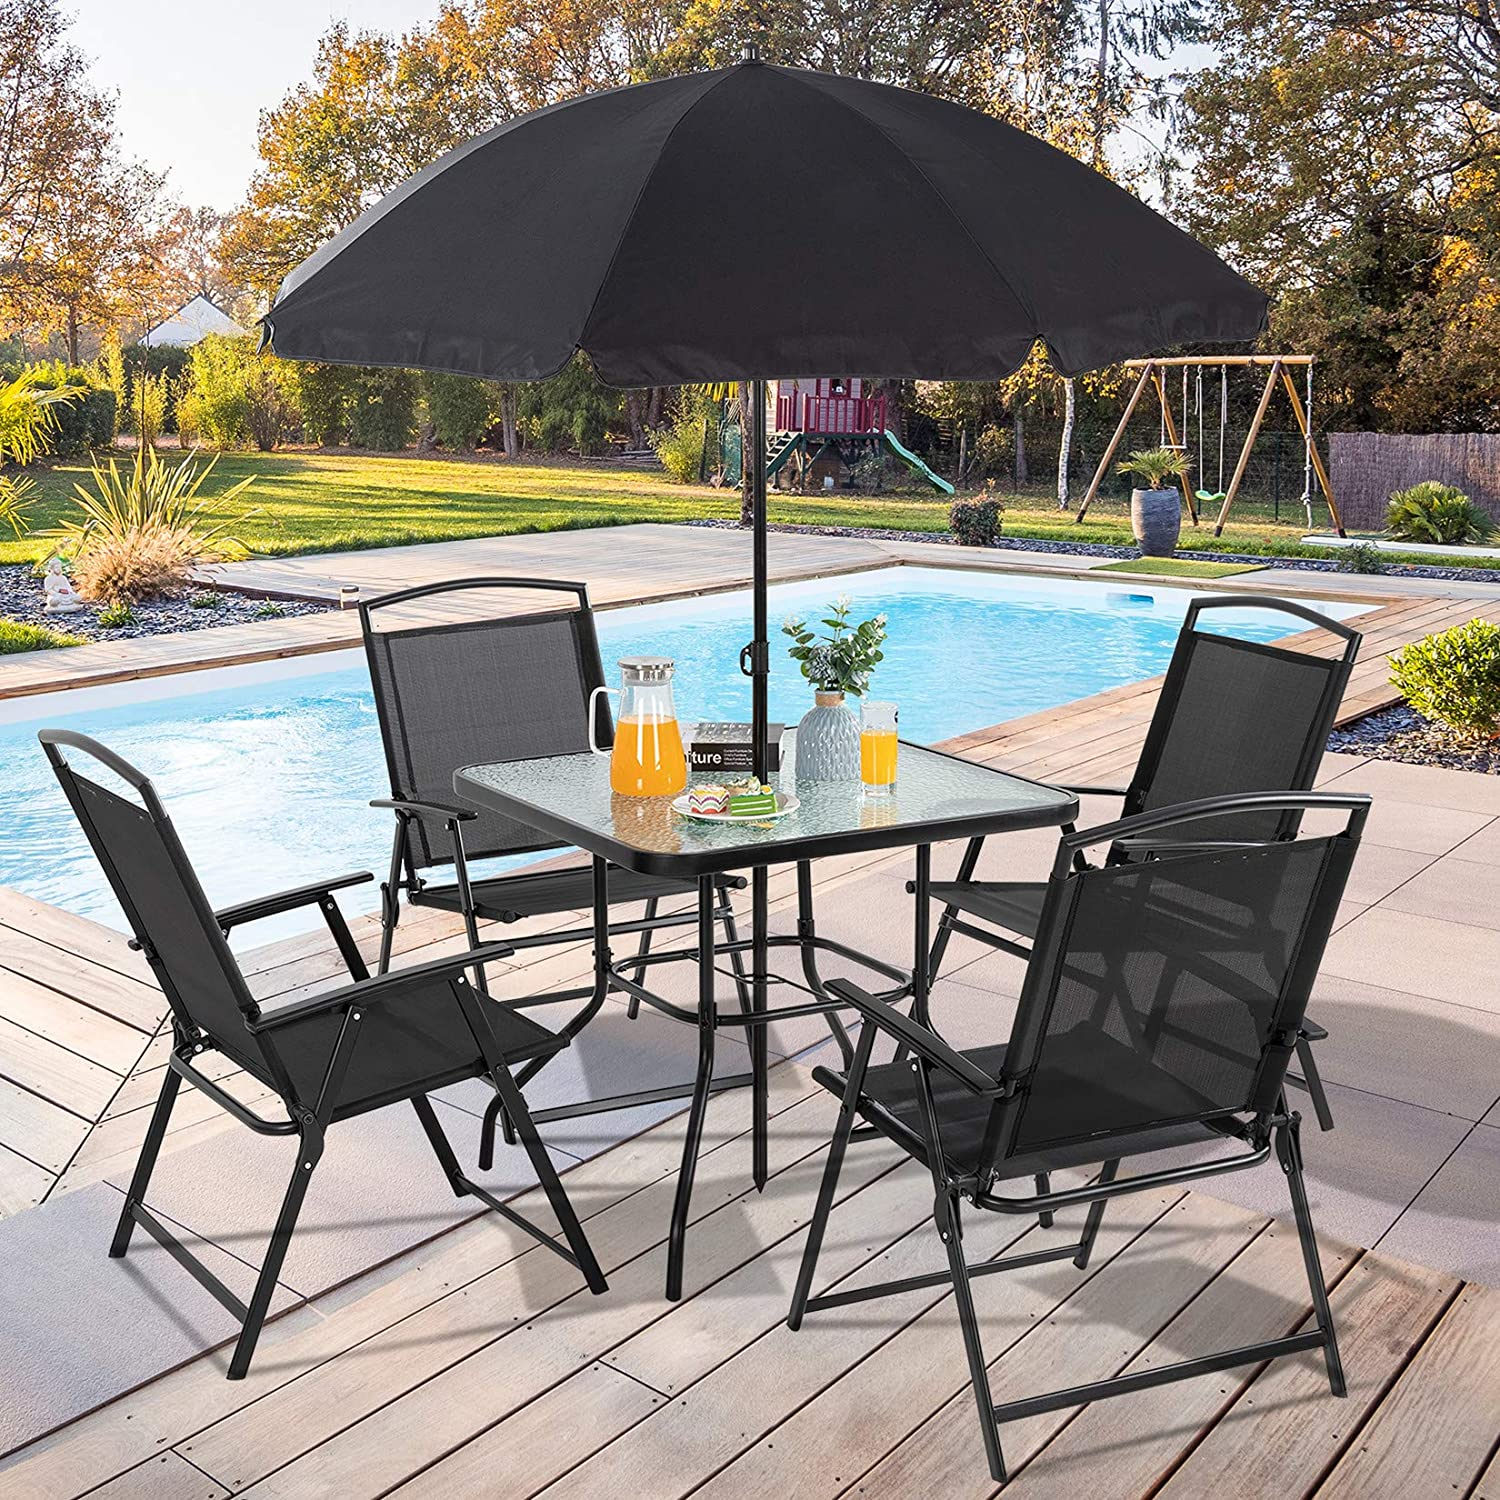 Vongrasig 9 Pieces Folding Patio Dining Set, All Weather Small Metal  Outdoor Table and Chair Set, Garden Patio Furniture Set w/Umbrella, Glass  Table & ...